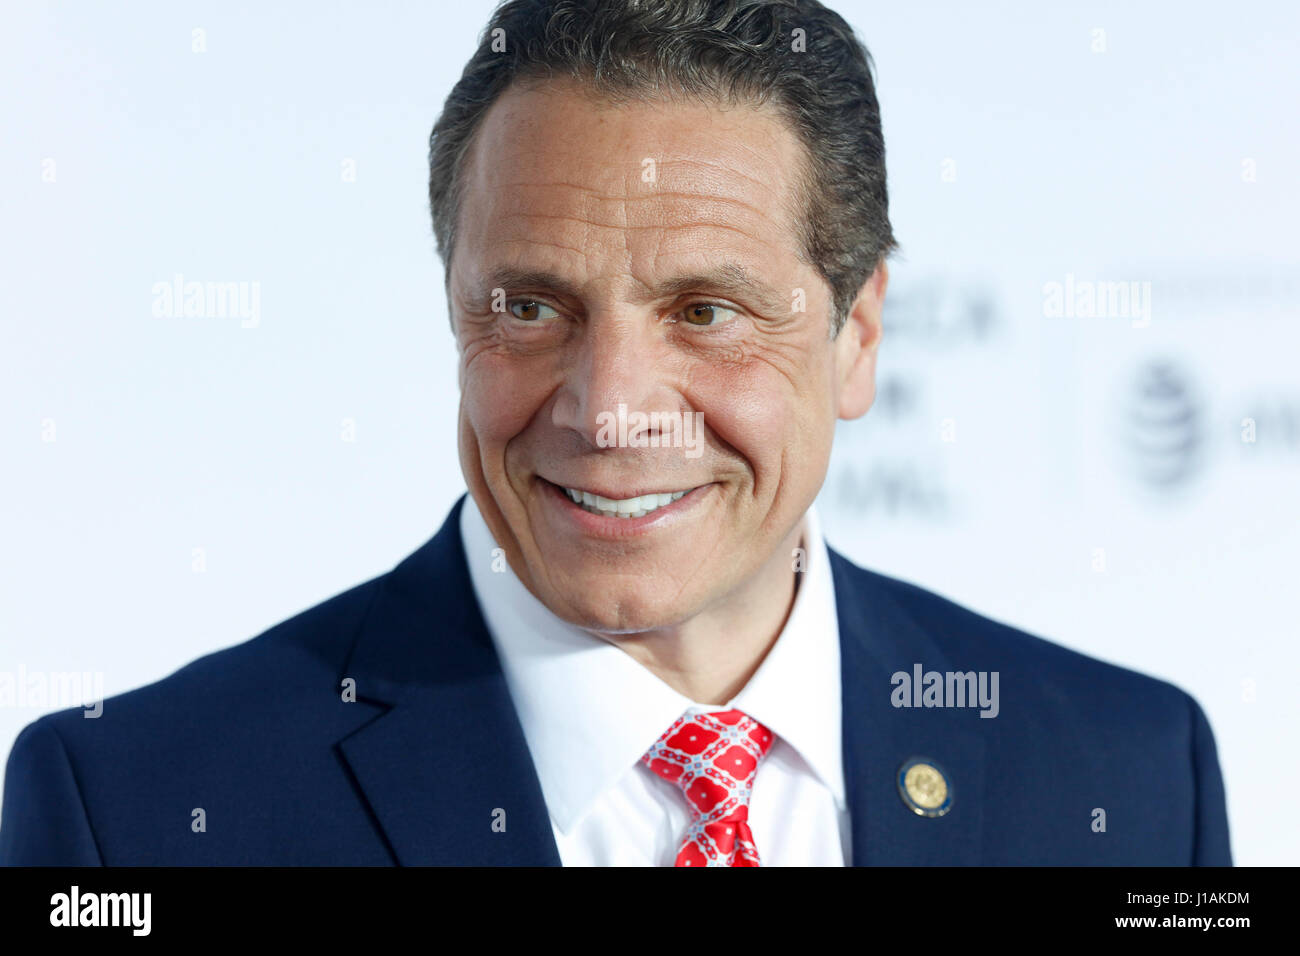 New York, USA. 19th April, 2017. Governor of New York, Andrew Cuomo arrives at the 2017 Tribeca Film Festival Opening - Stock Image